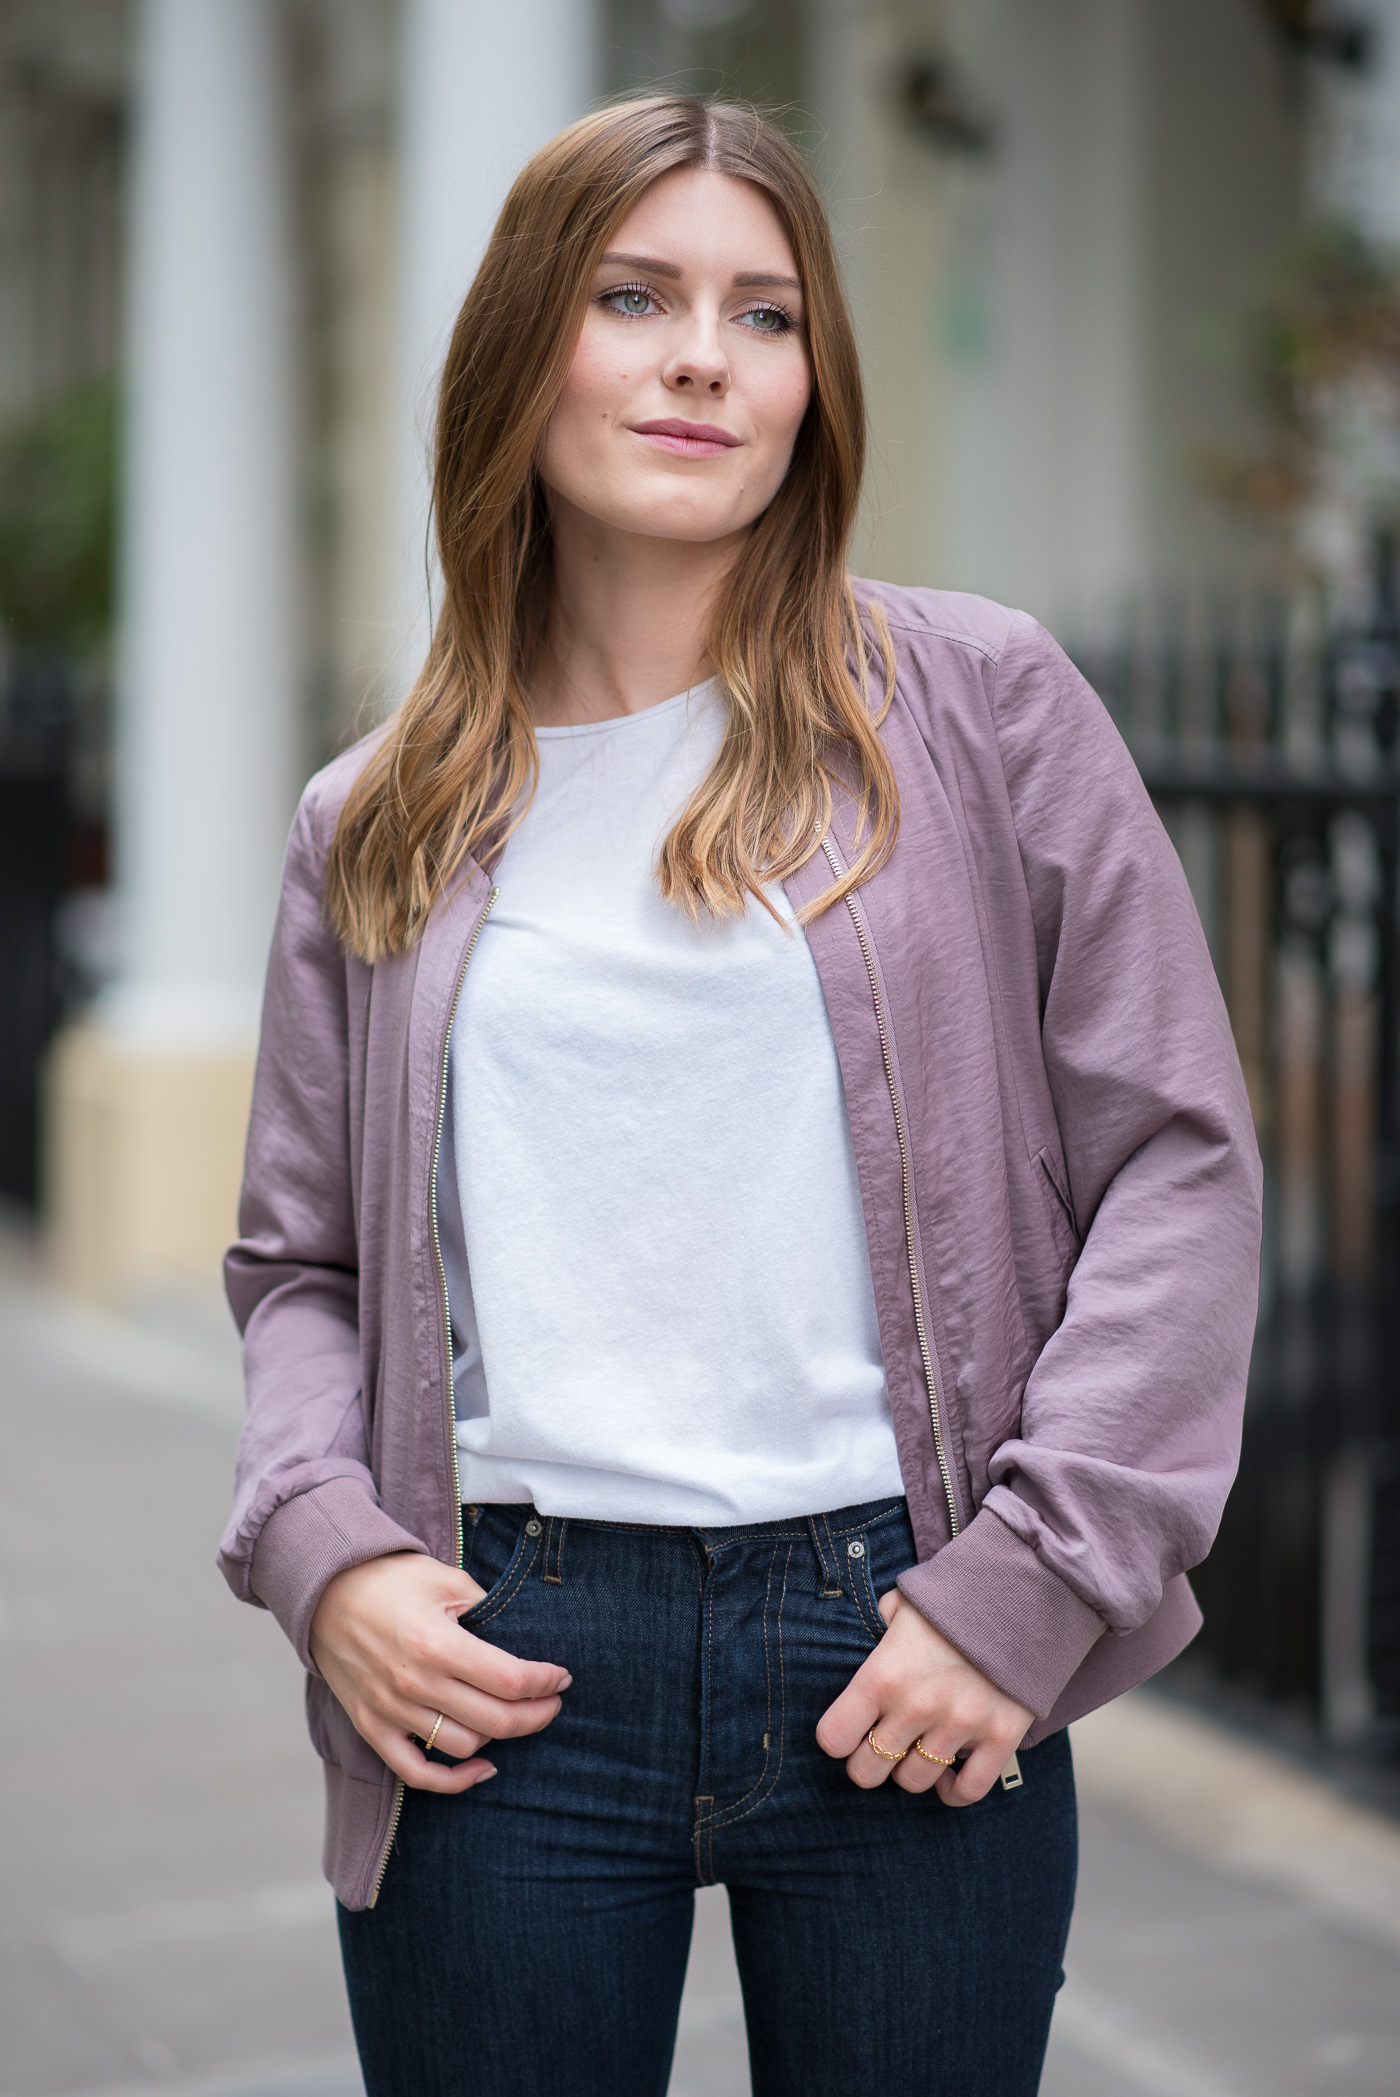 comfy_outfit_bomber_jacket_london_6